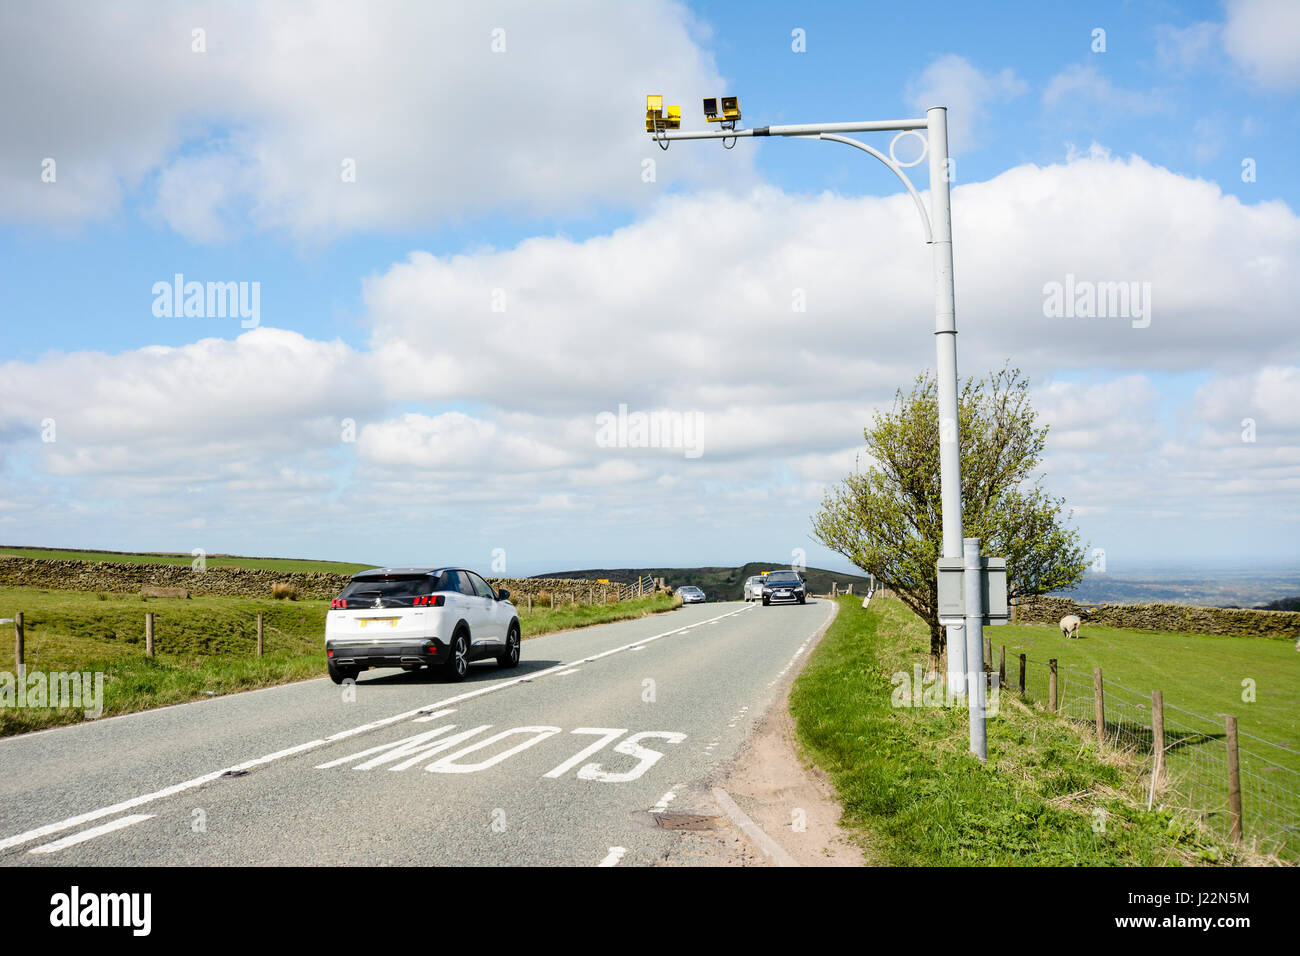 Average speed camera on the  A527 Macclesfield to Buxton Road through the pennines in the Peak District National - Stock Image